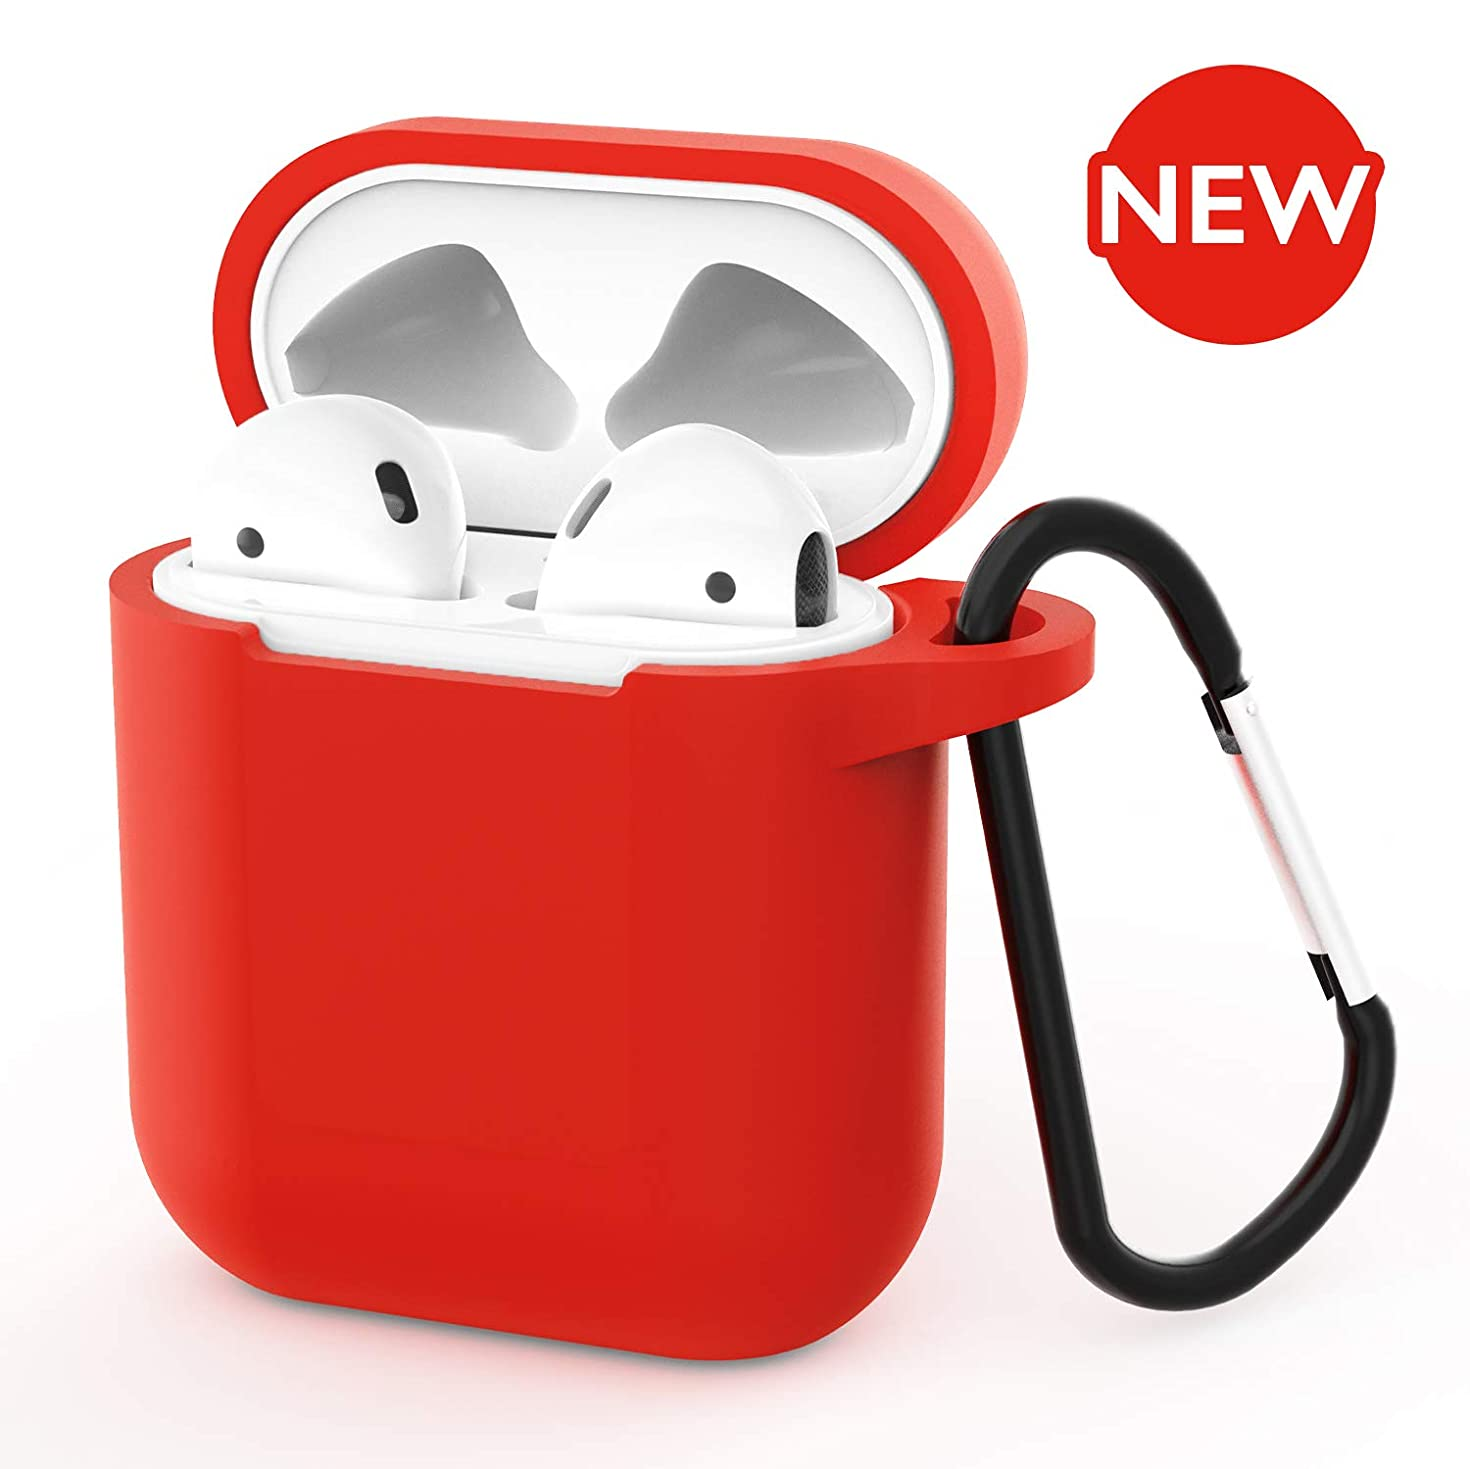 AirPods Case - BLUEWIND 2019 Newest 360° Protective Silicone AirPod Case Cover Compatiable with Apple AirPods 1st/2nd (Red)